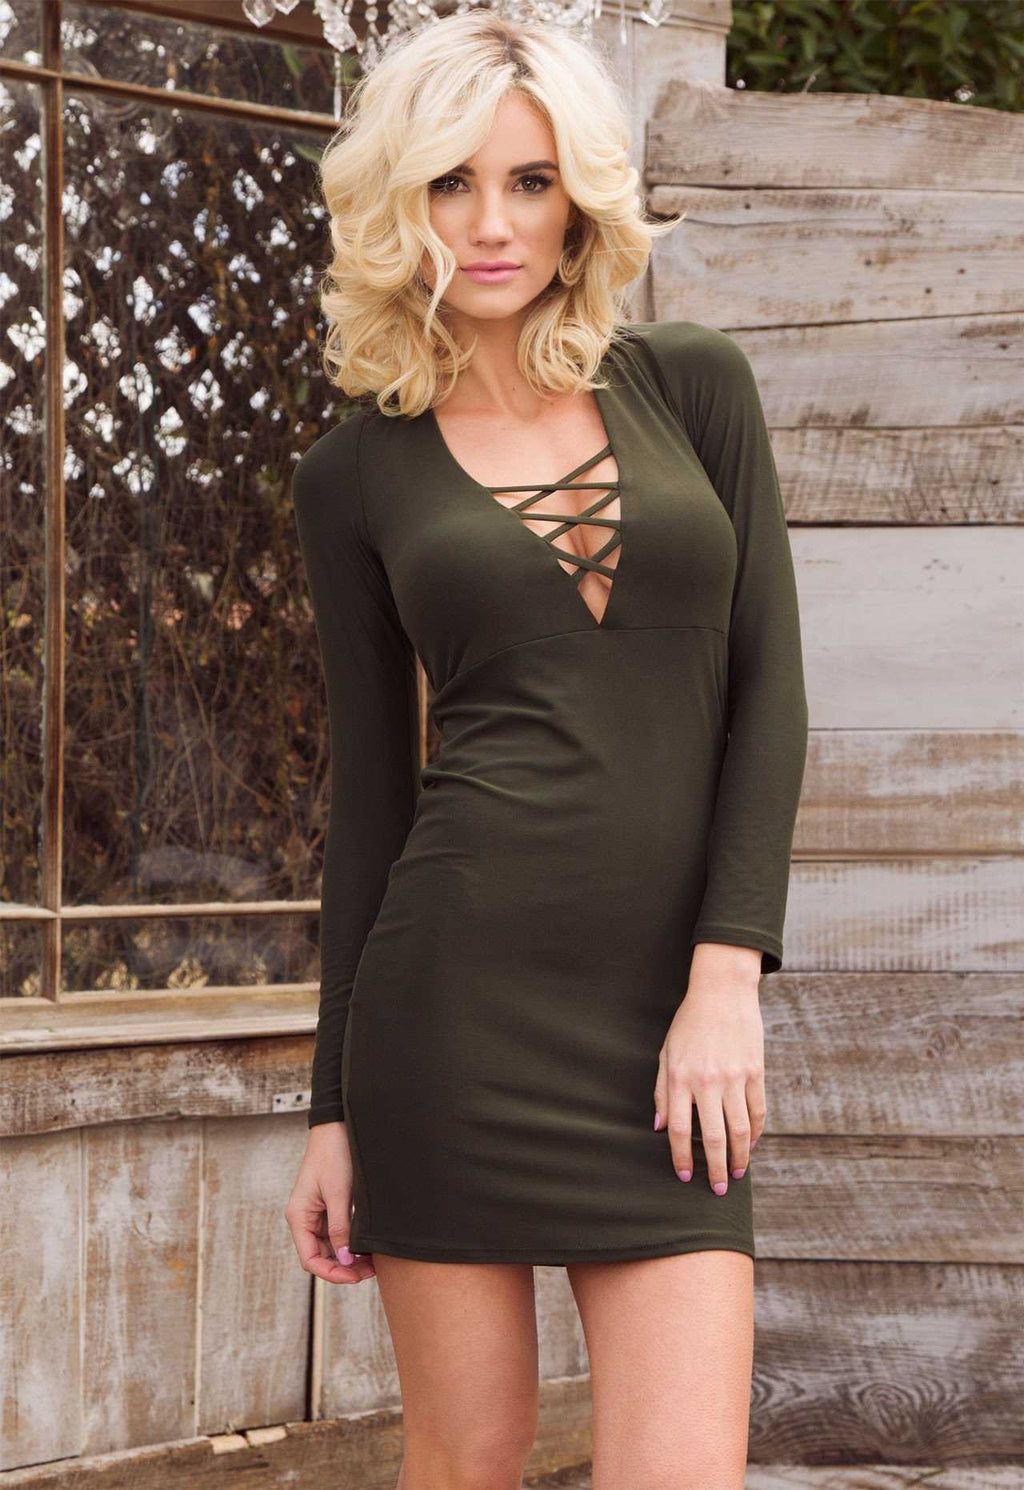 Dresses - Siren Lace Up Dress - Olive